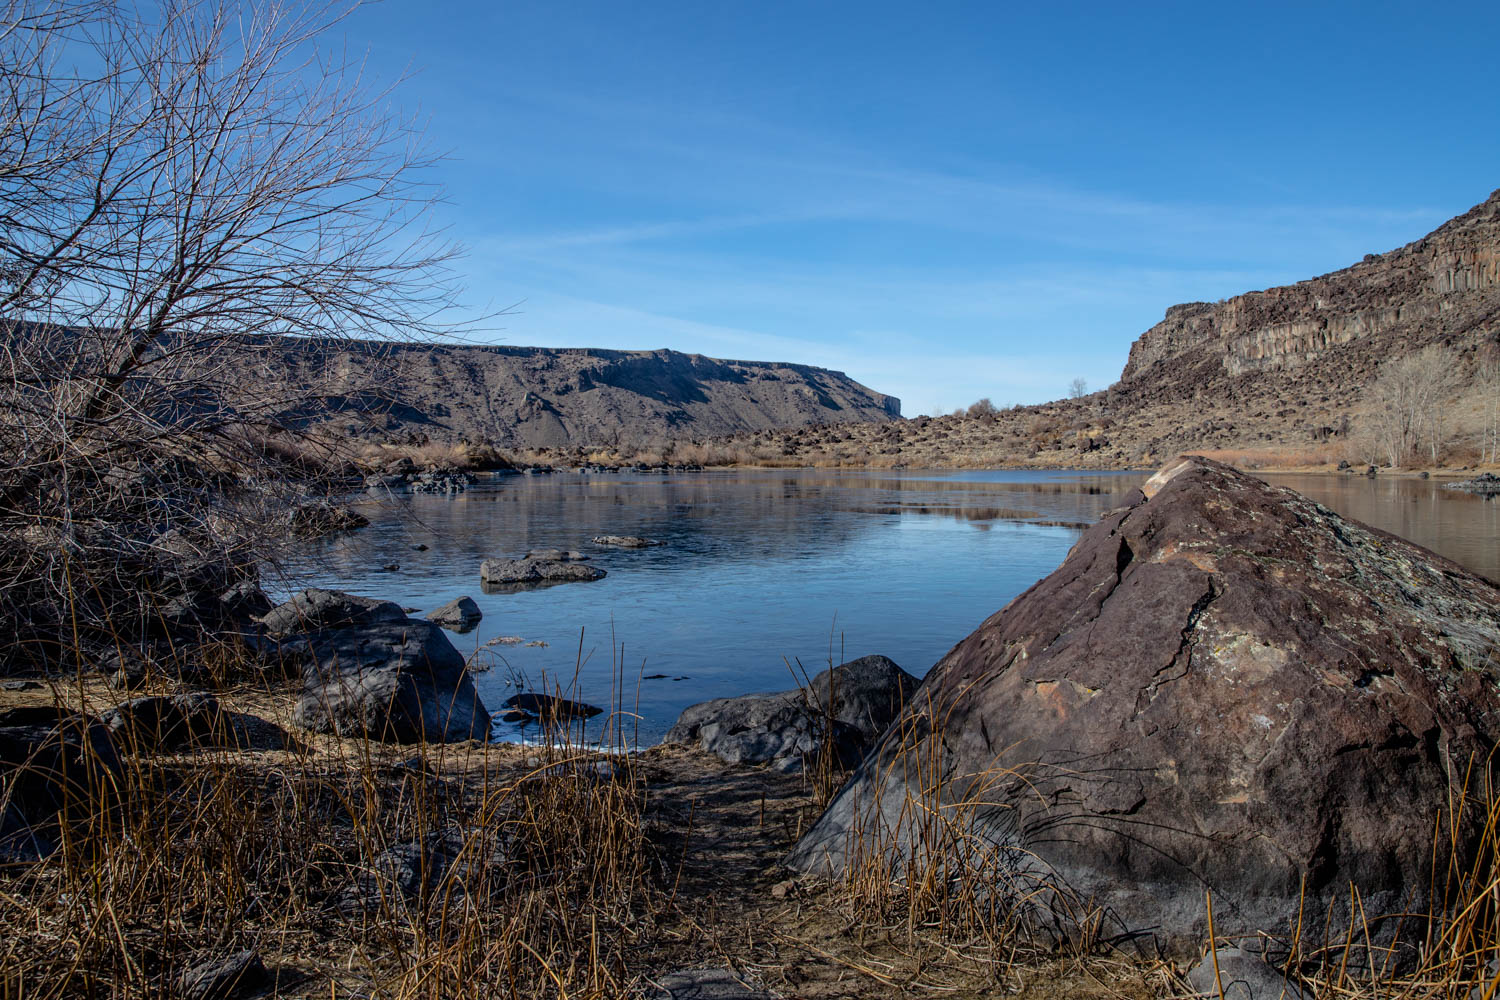 Halverson Lake in Melba Idaho with rocks all around and pretty dry scenery in the winter. Blue skies with wispy clouds.